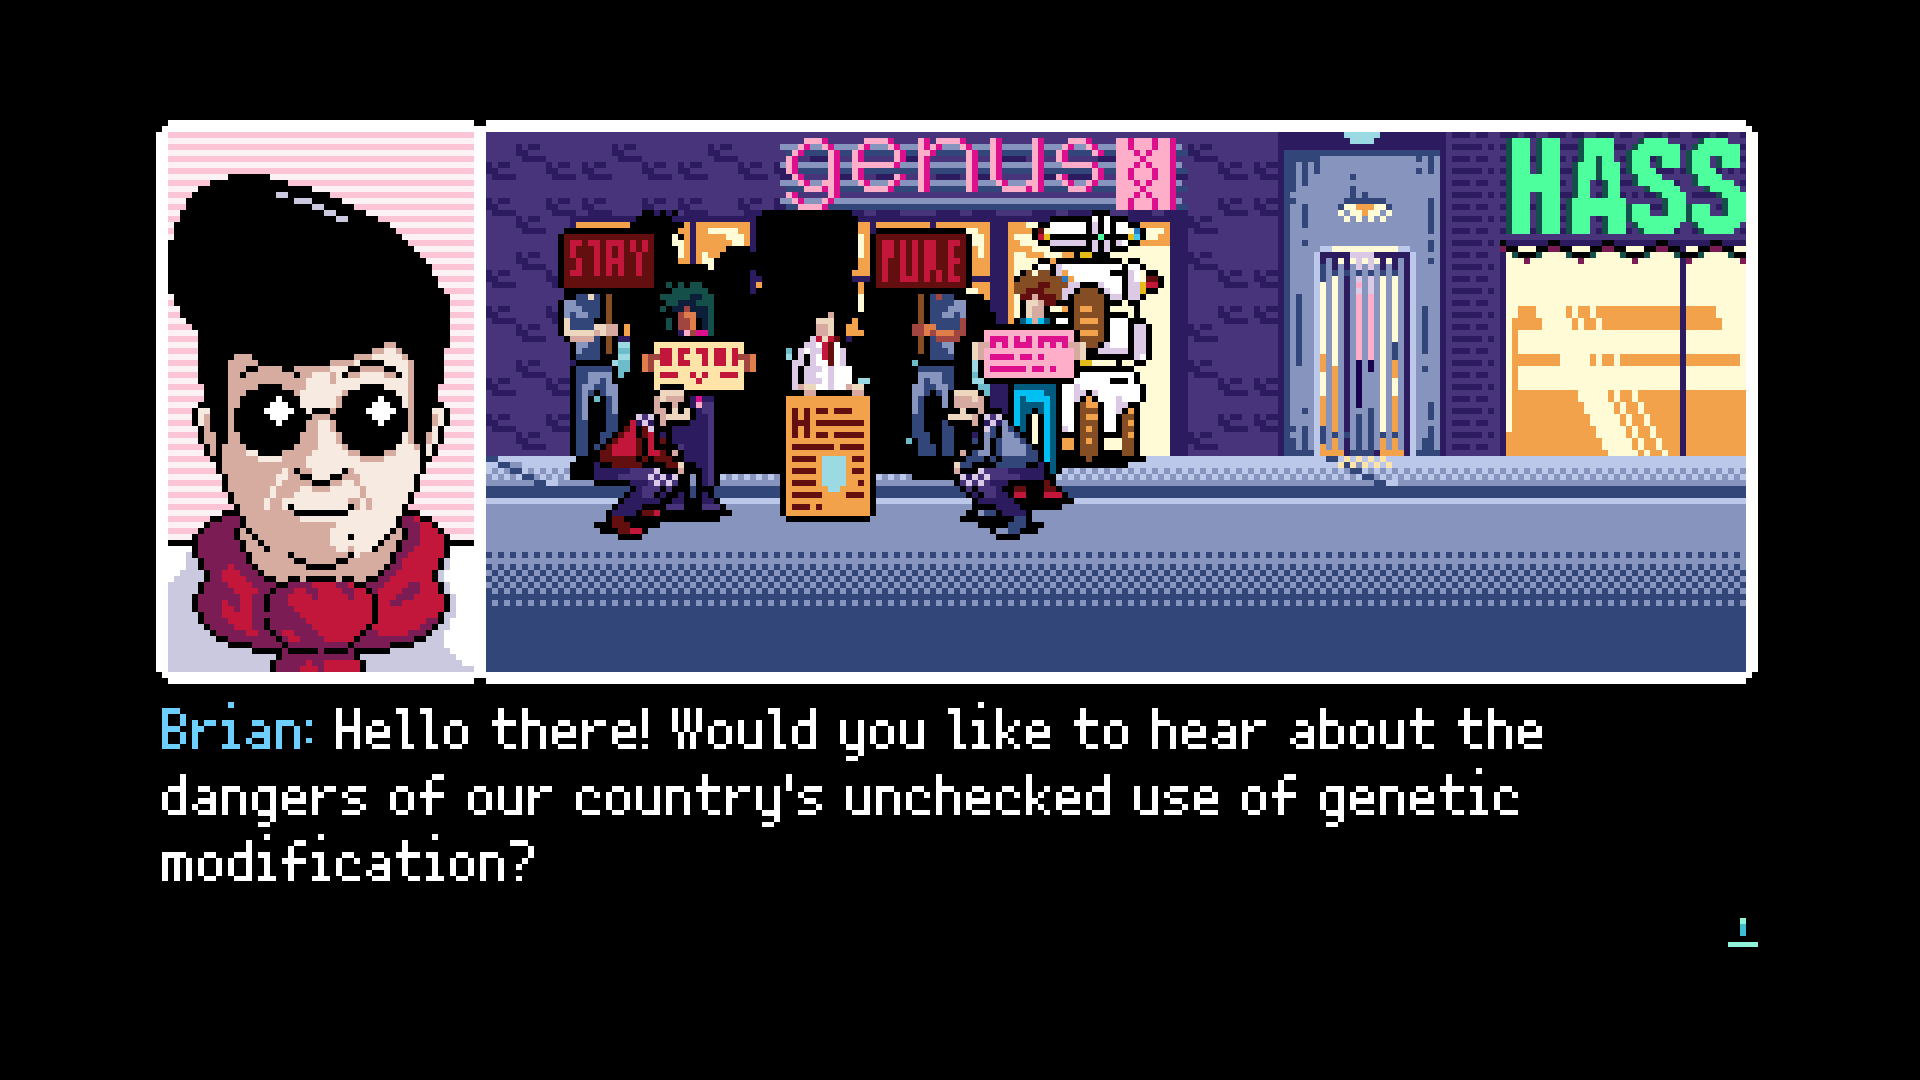 2064_ Read Only Memories_20170115020157